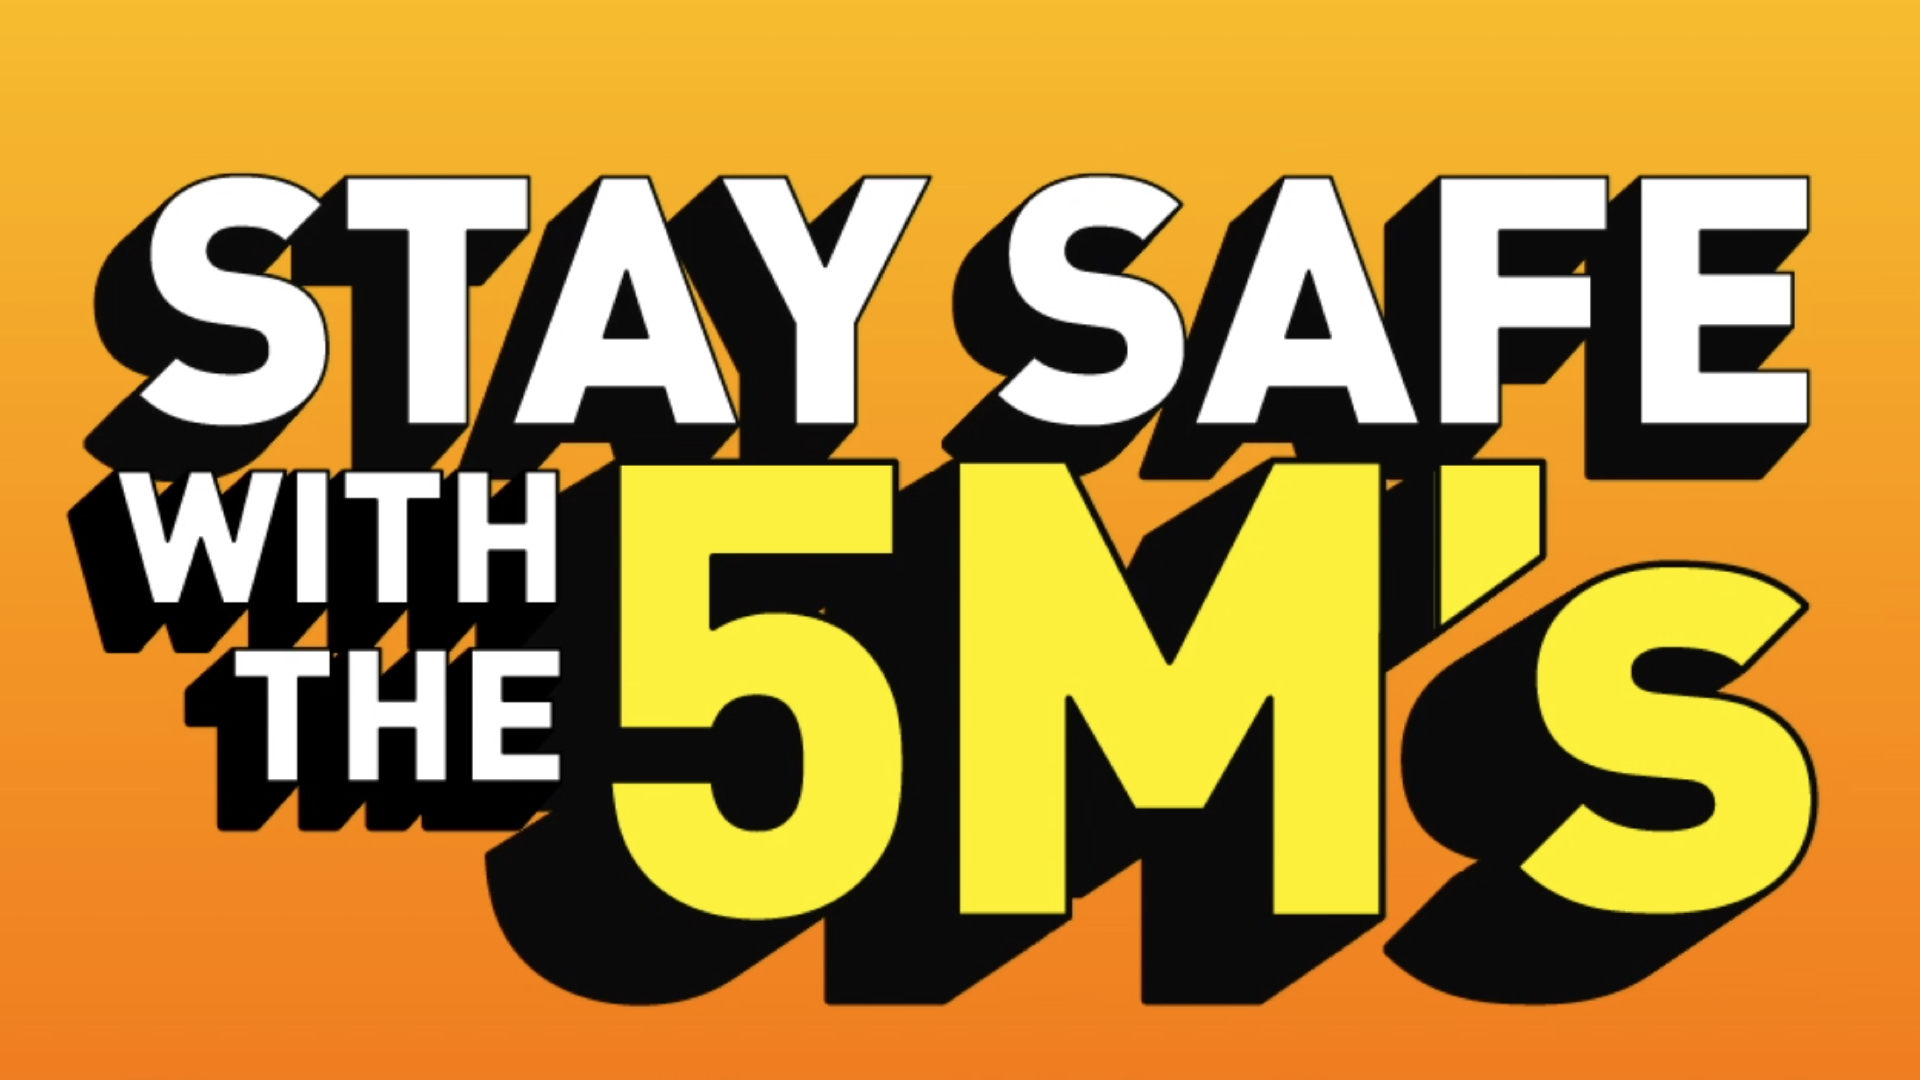 Stay Safe with 5Ms